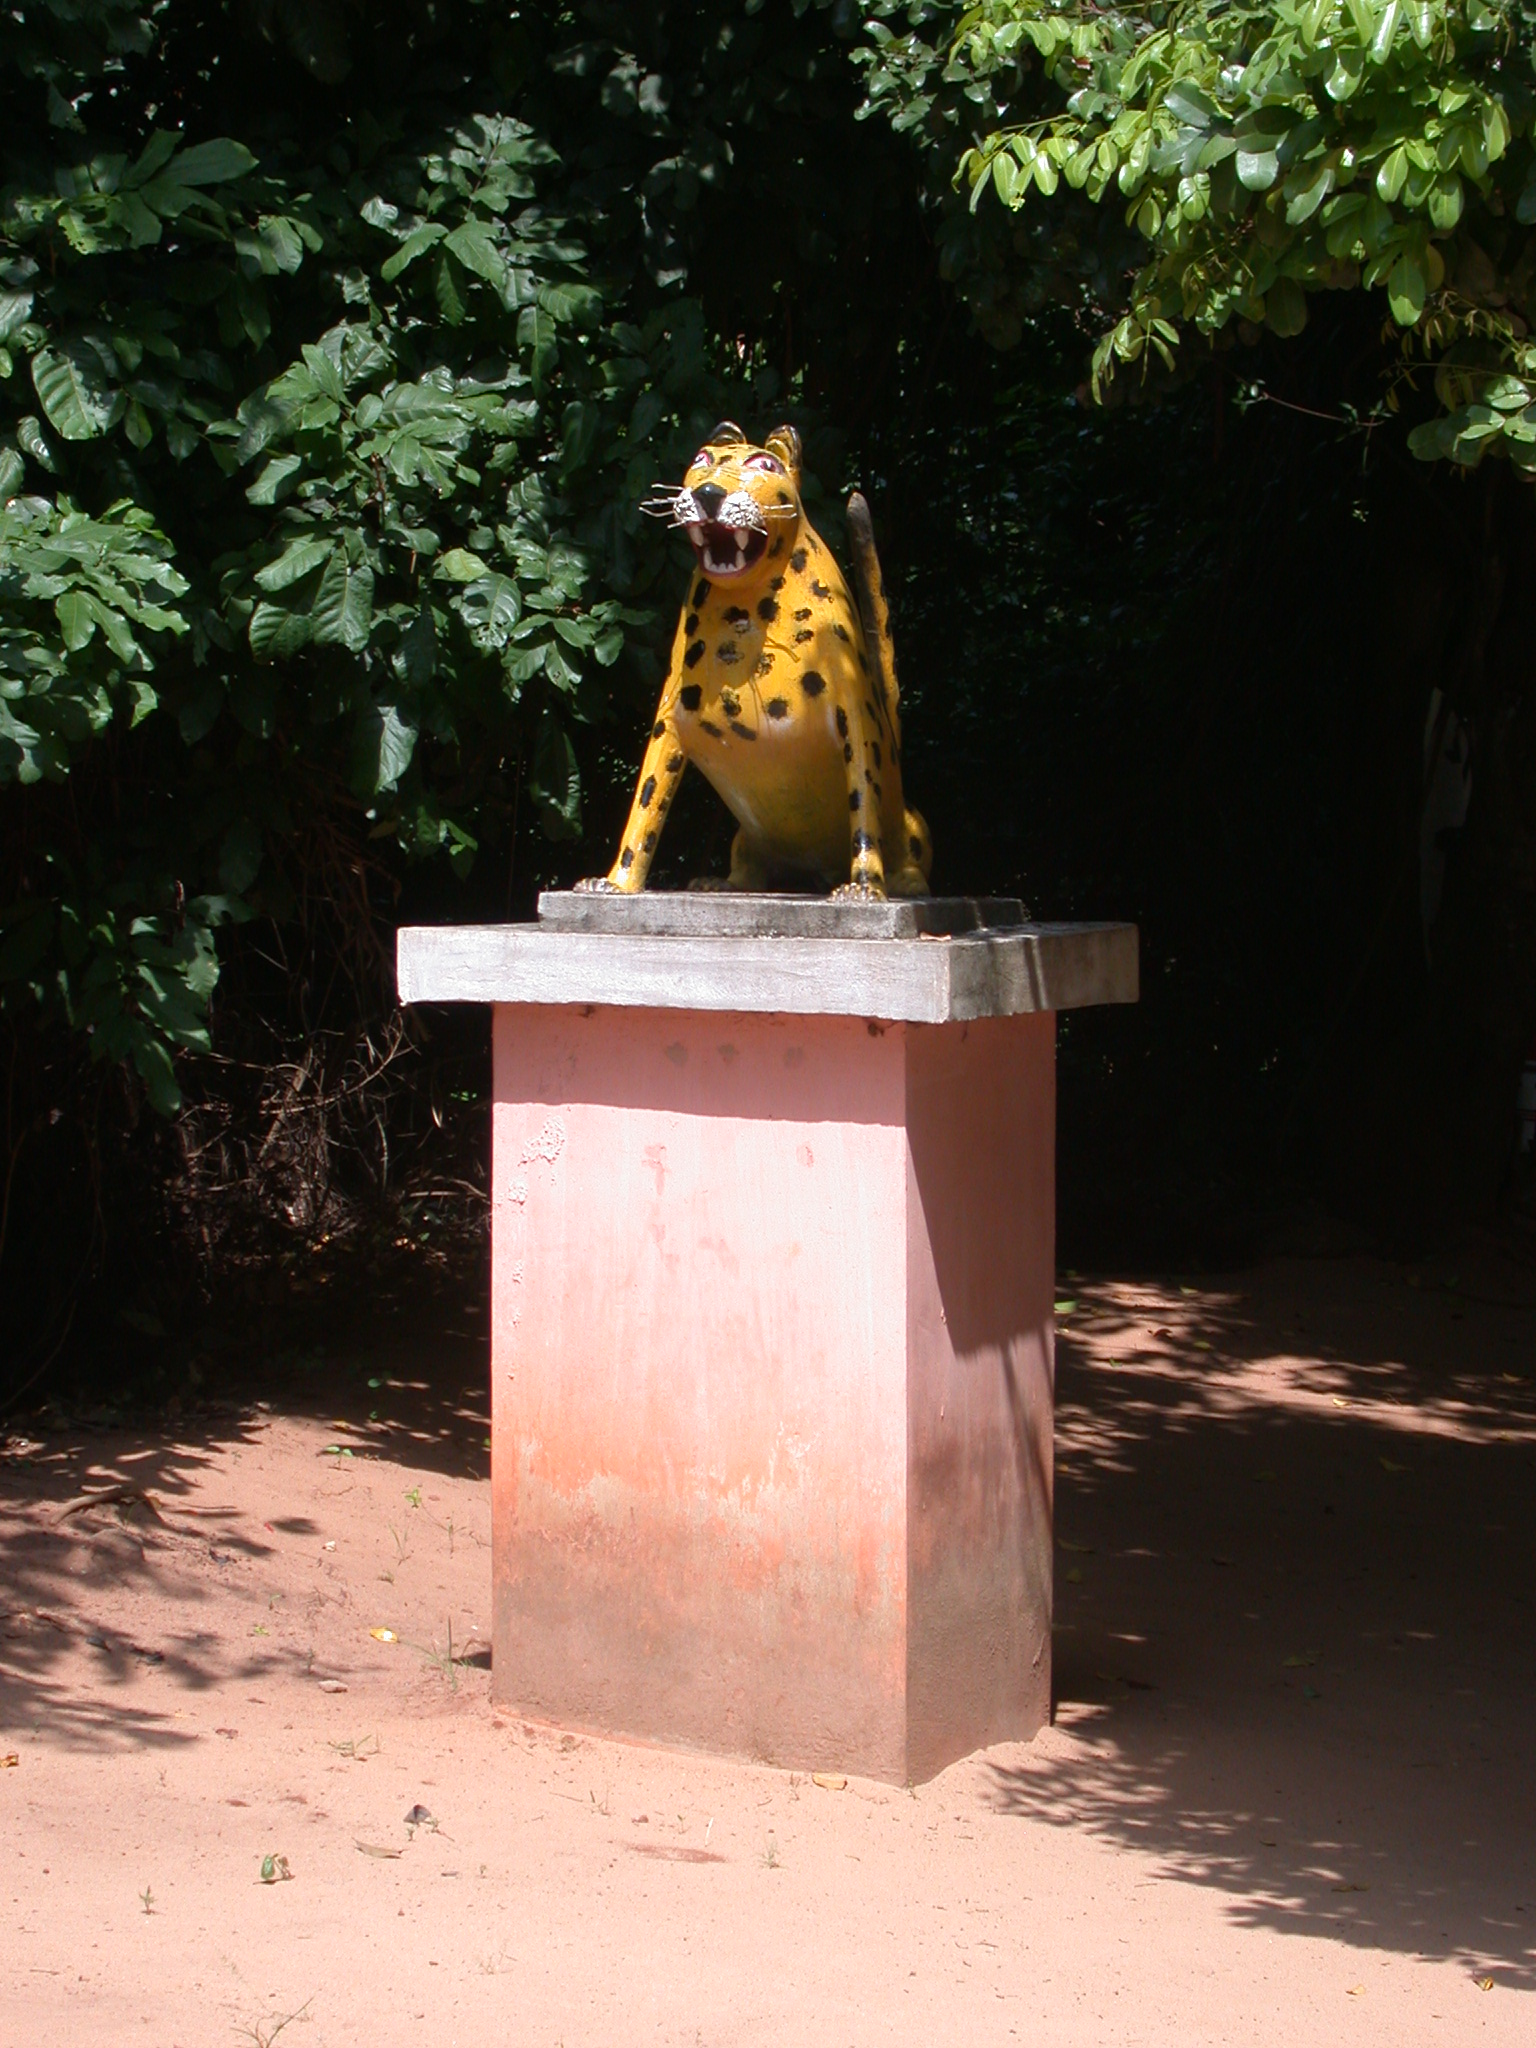 Jaguar Sculpture, Kpasse Sacred Forest, Ouidah, Benin